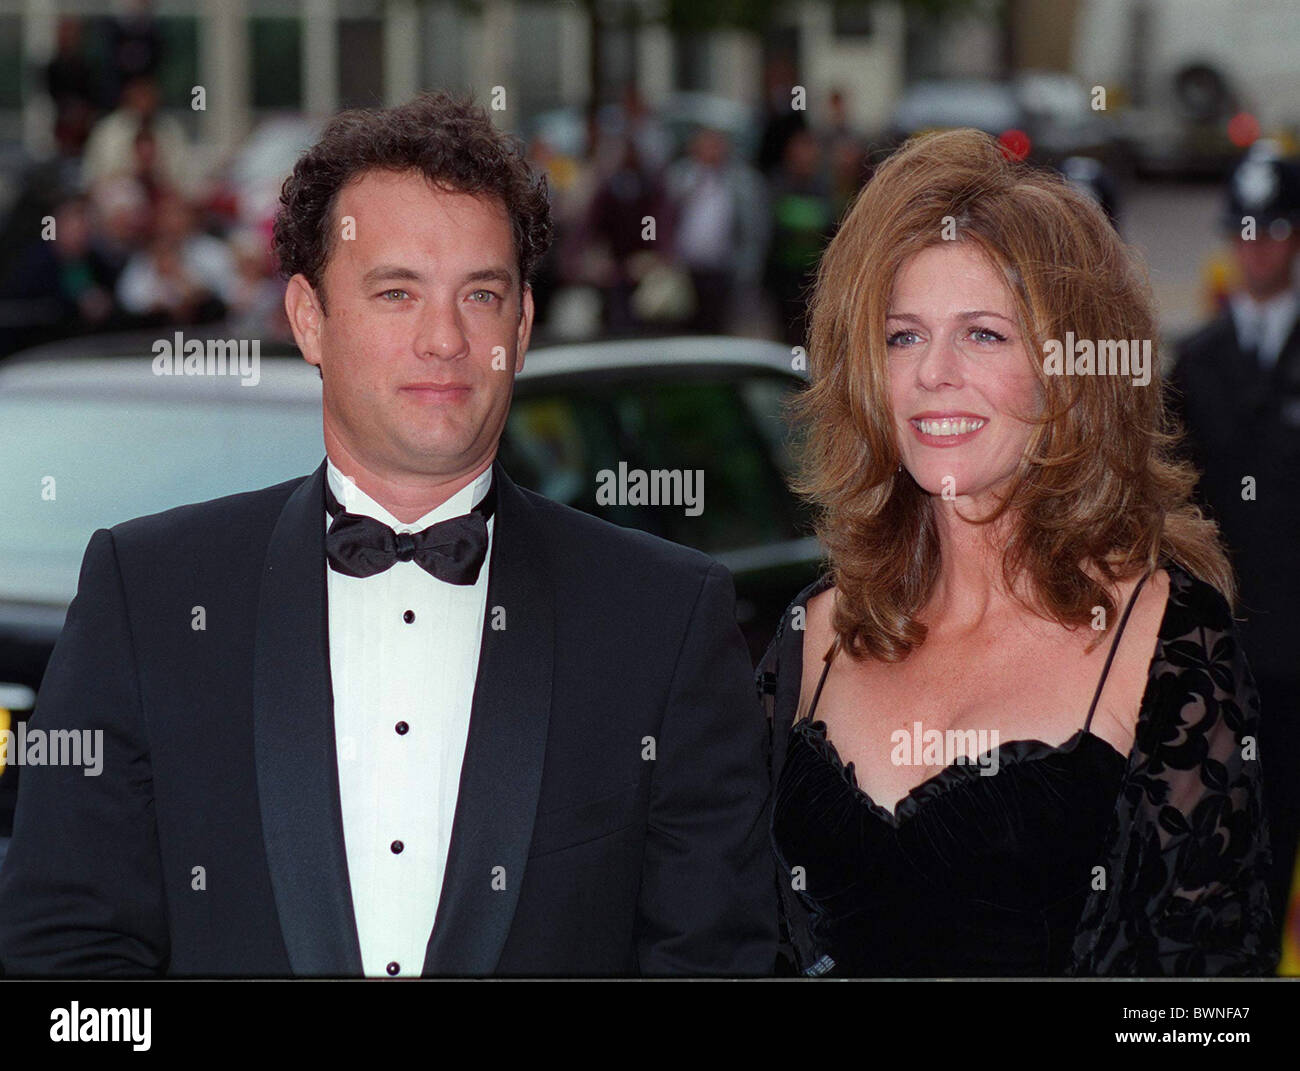 ACTOR TOM HANKS AND HIS WIFE, RITA WILSON, AT THE FILM PREVIEW OF 'APOLLO 13' FILM IN LONDON. - Stock Image